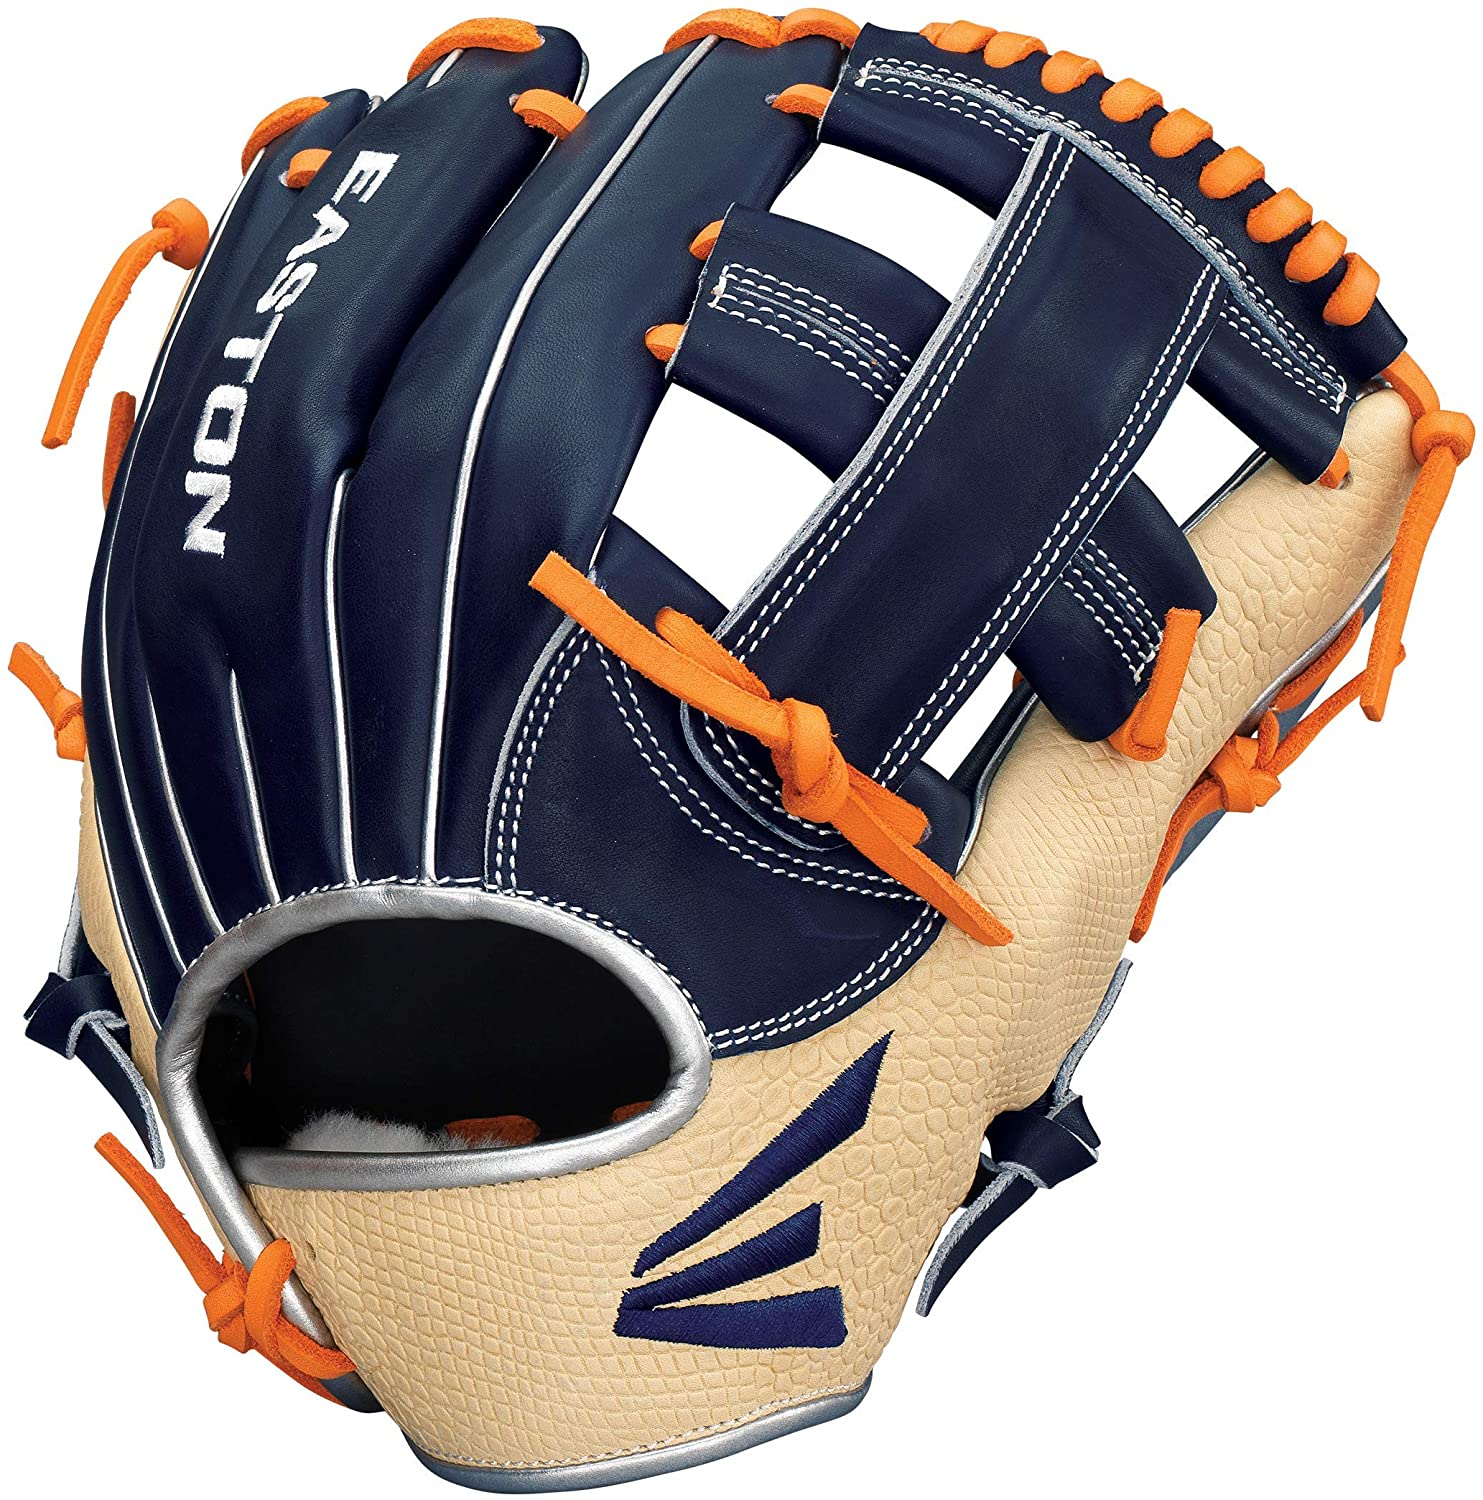 easton-pro-reserve-baseball-glove-alex-bregman-11-75-right-hand-throw PRD32AB-RightHandThrow Easton  <span>Step on to the field like a Pro with Easton's all-new